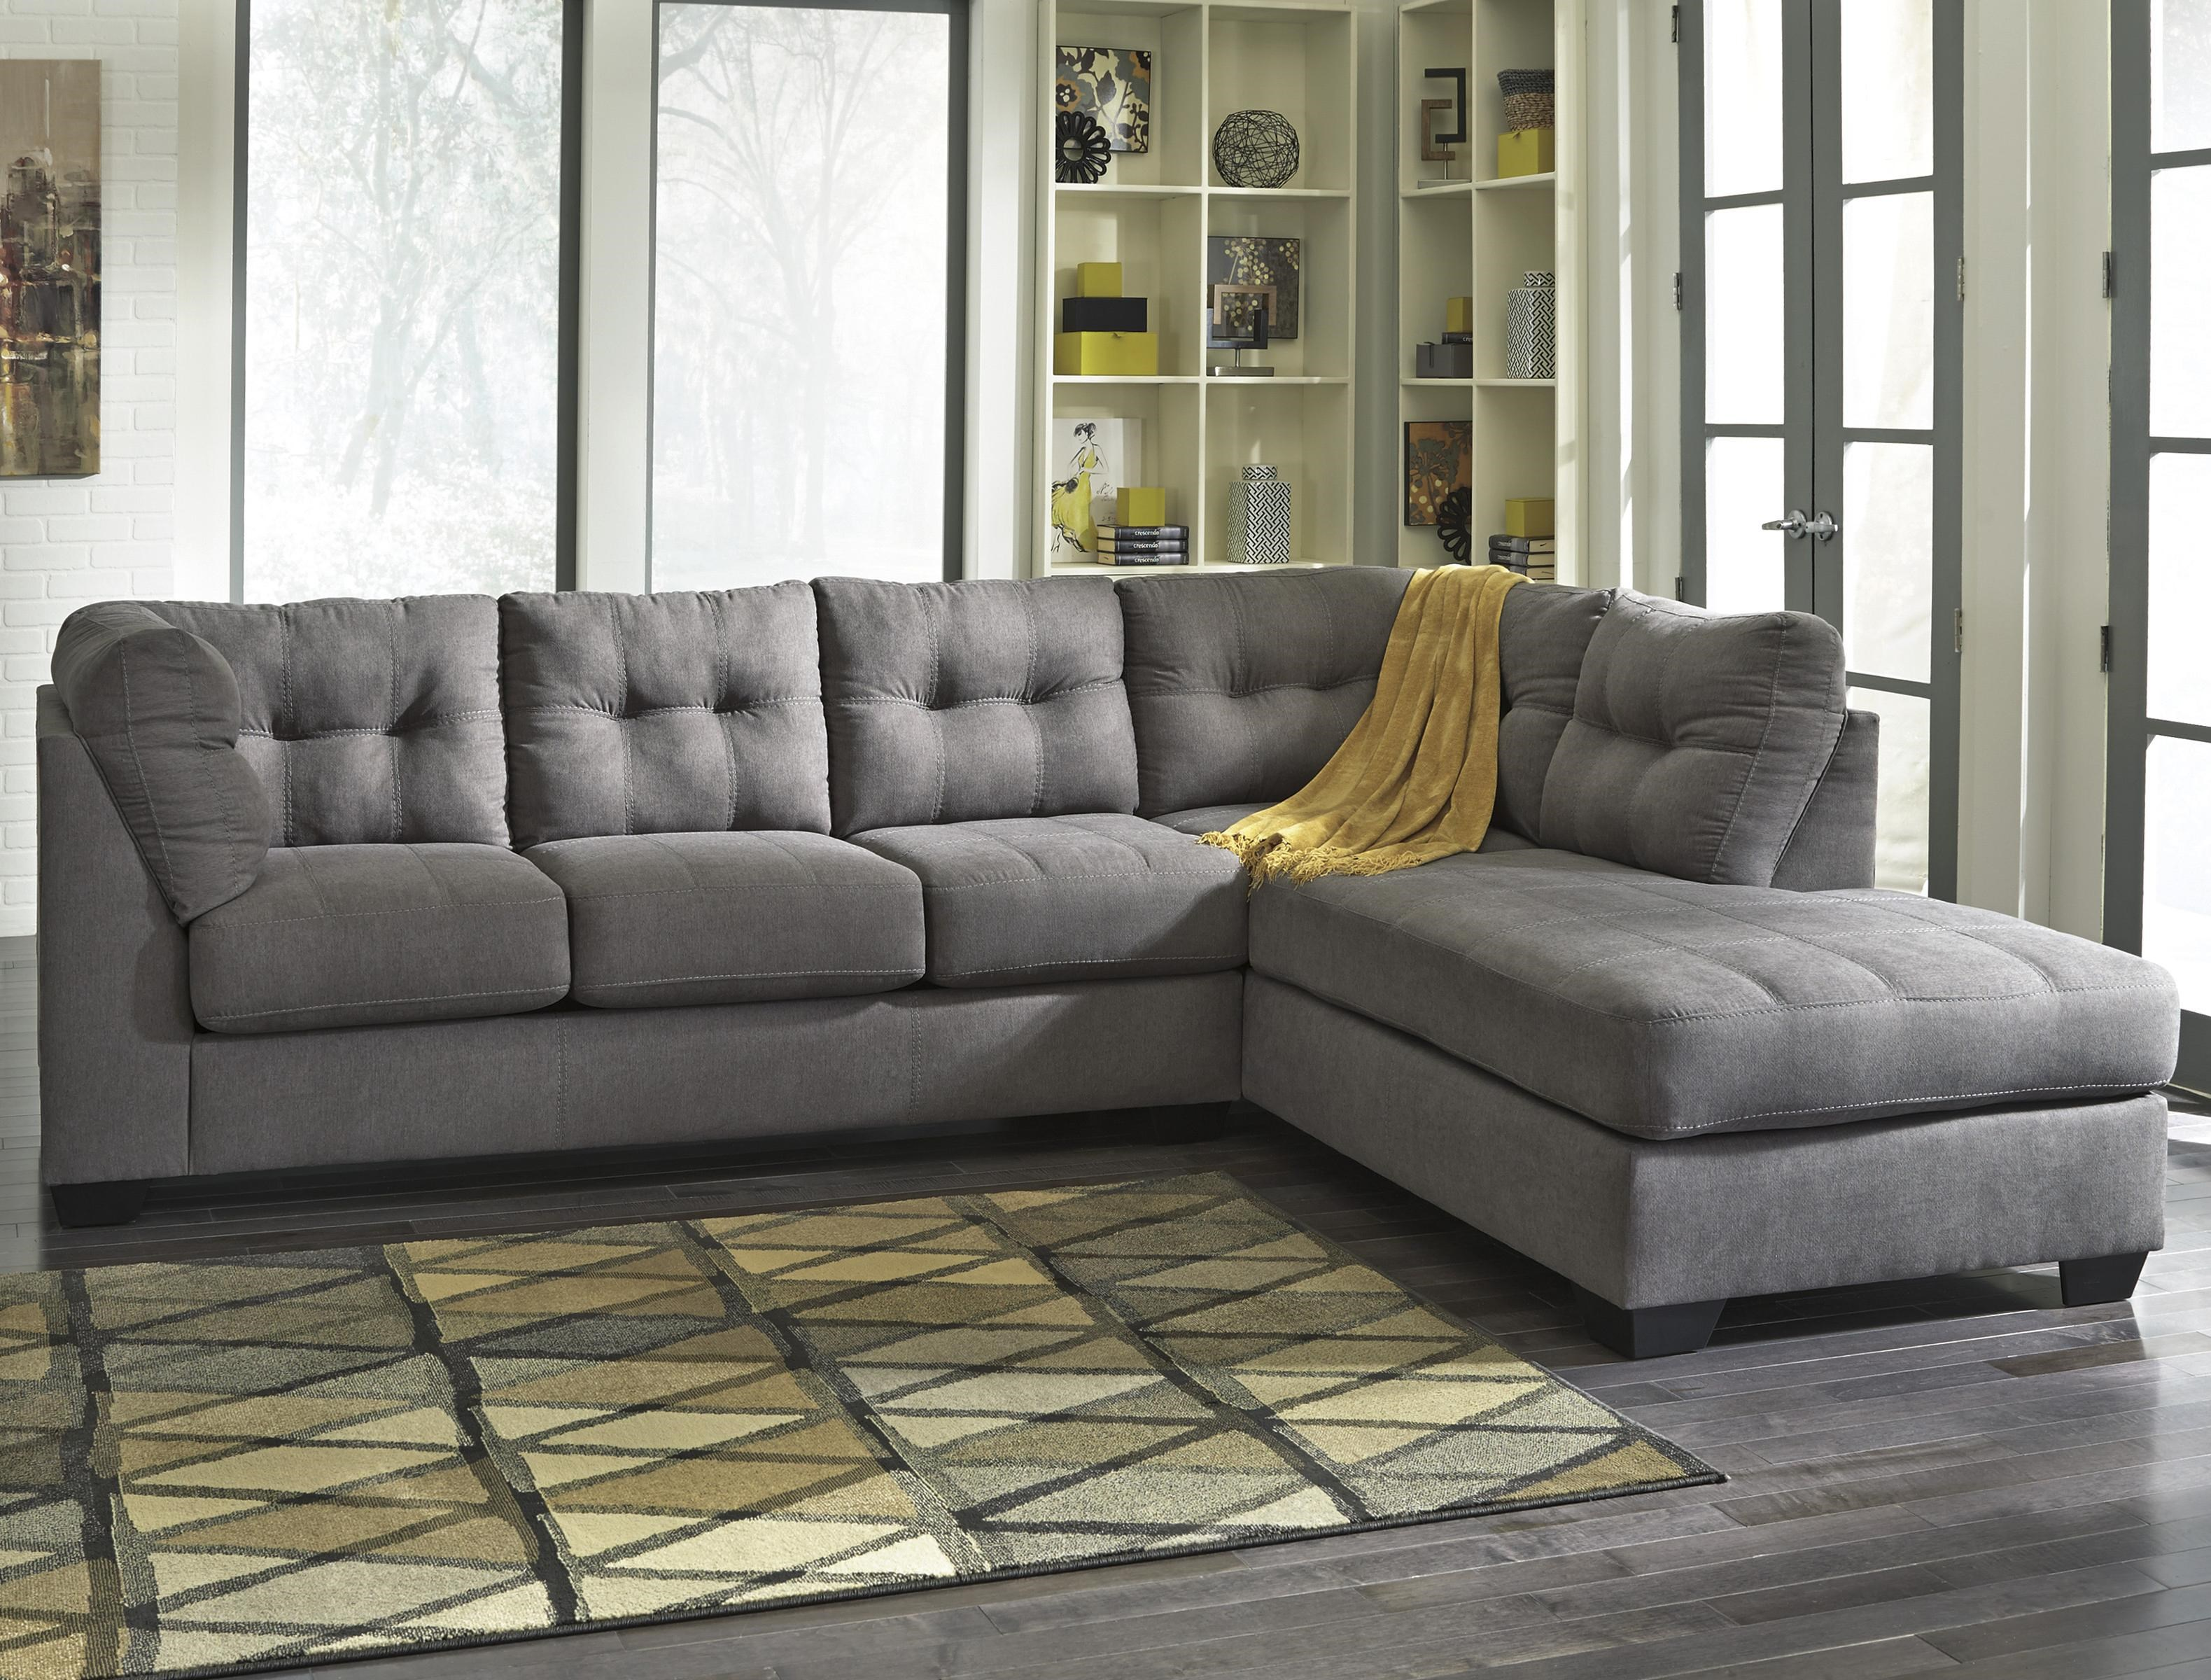 Delicieux Benchcraft Maier   Charcoal 2 Piece Sectional W/ Sleeper Sofa U0026 Right Chaise